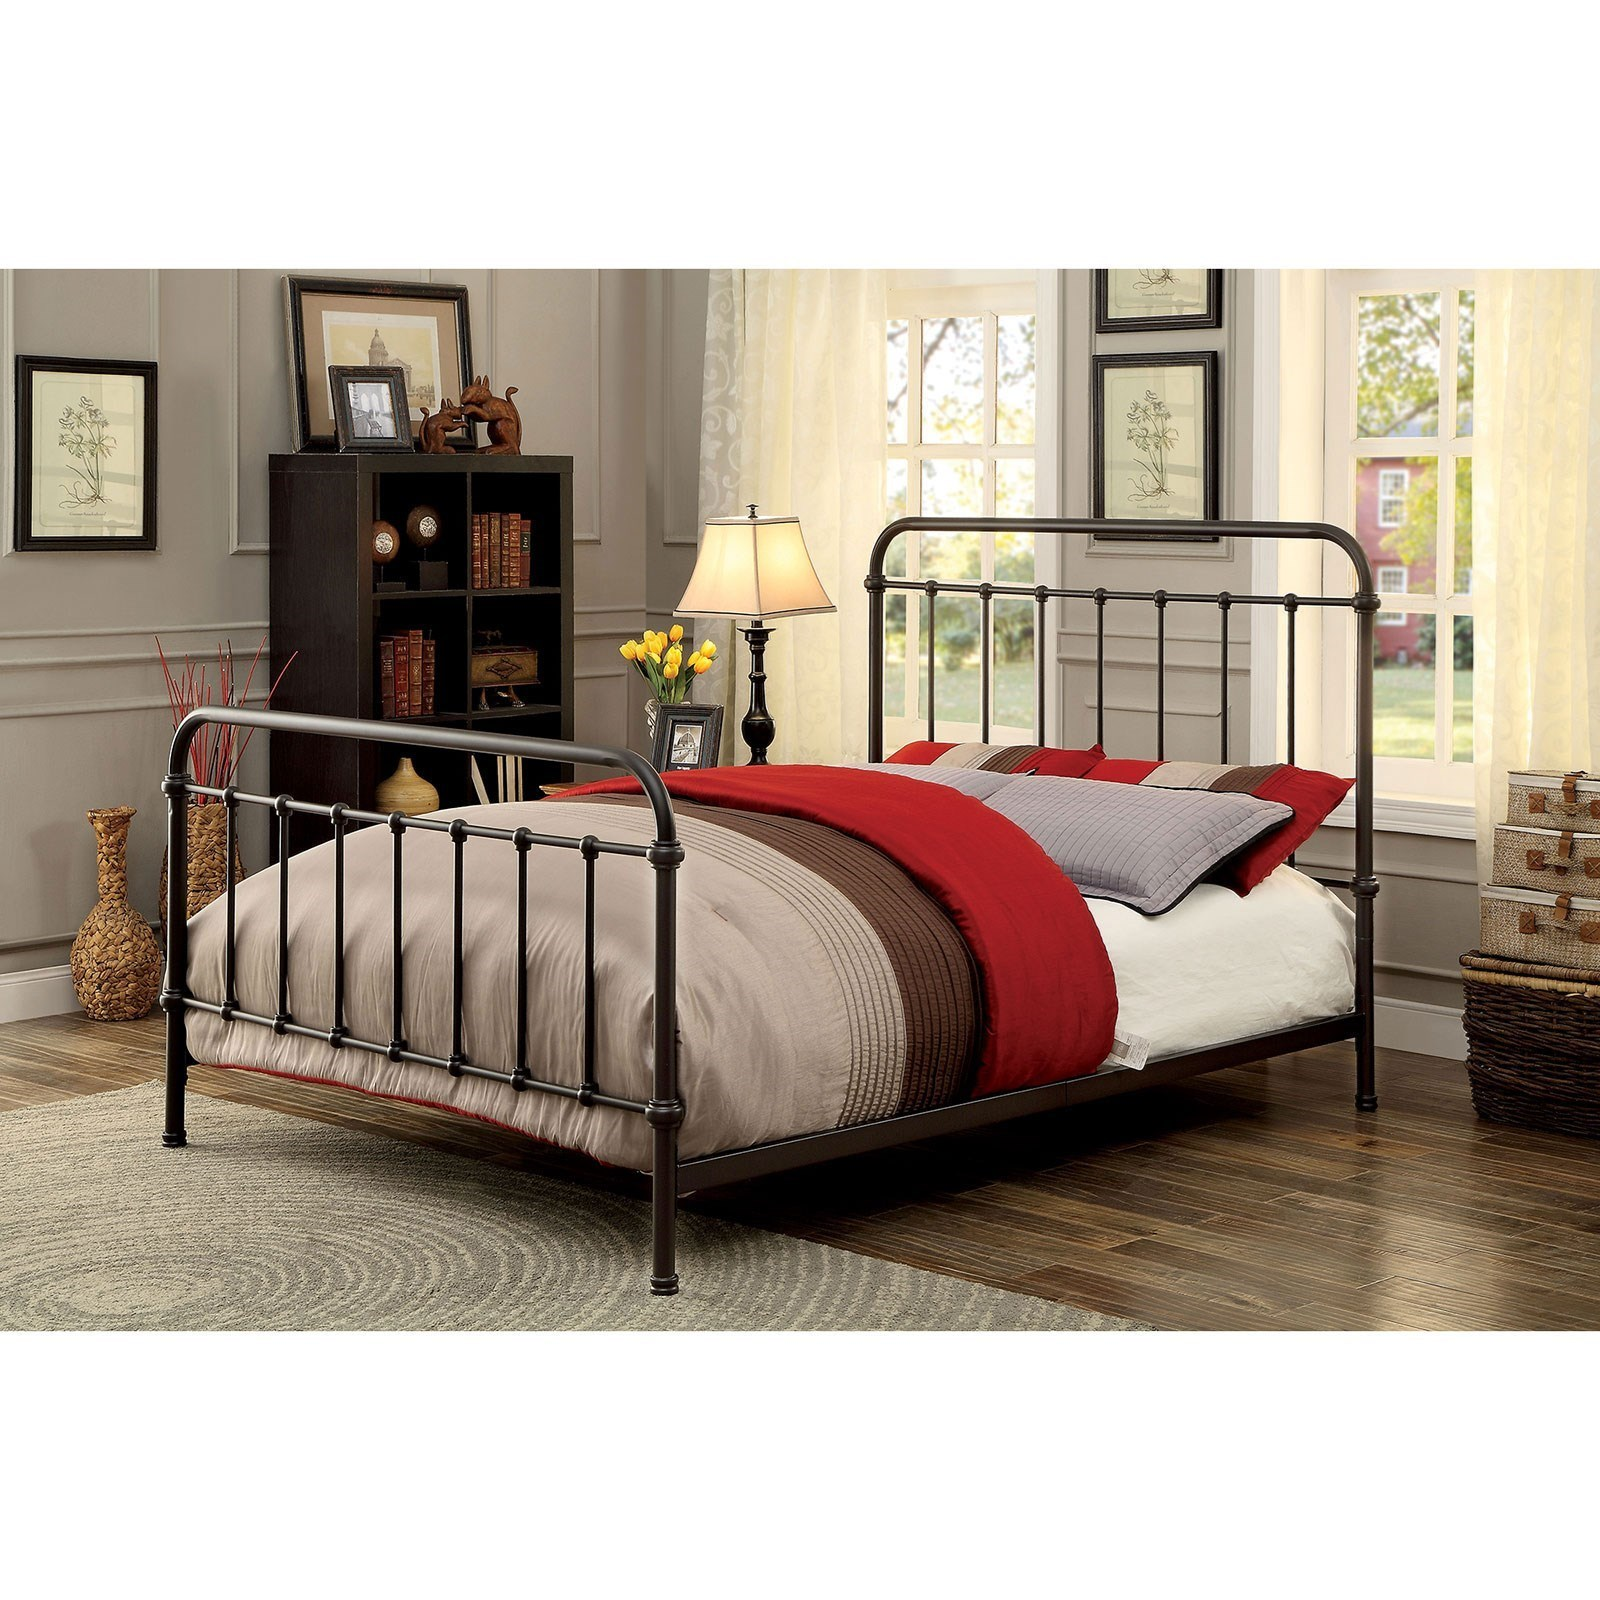 Iria California King Bed by Furniture of America at Dream Home Interiors